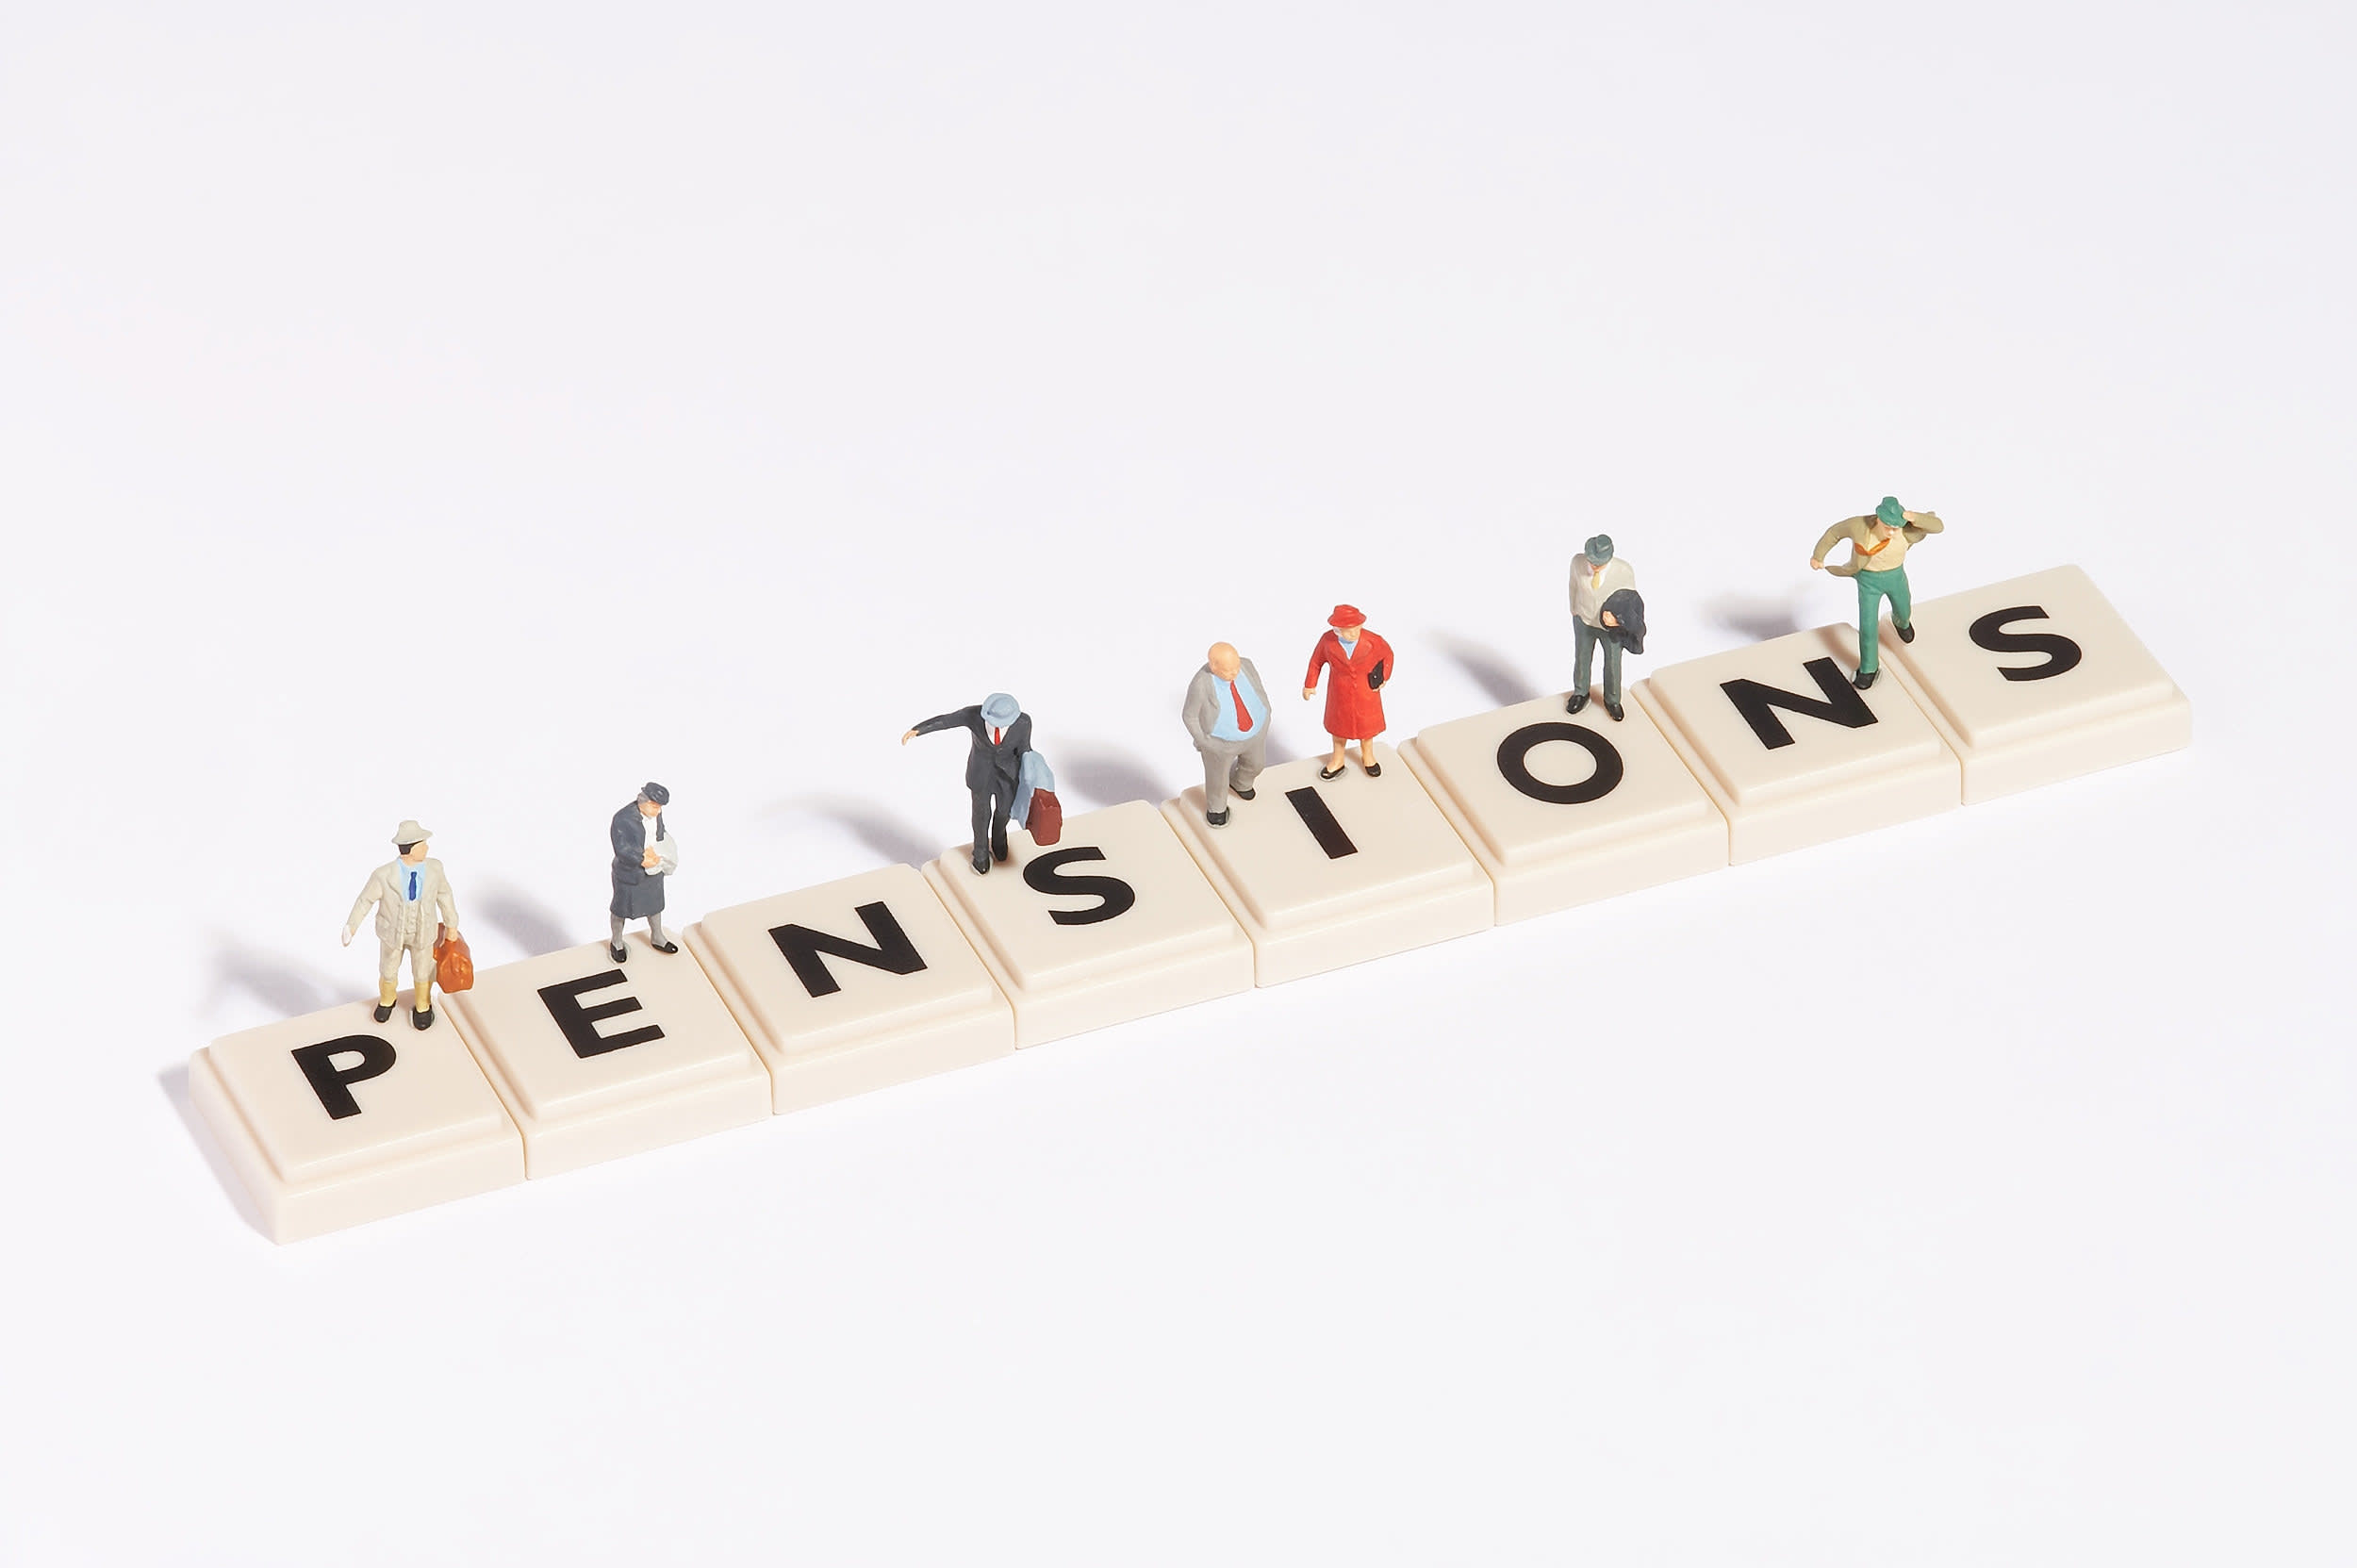 Small employers catching up on auto-enrolment